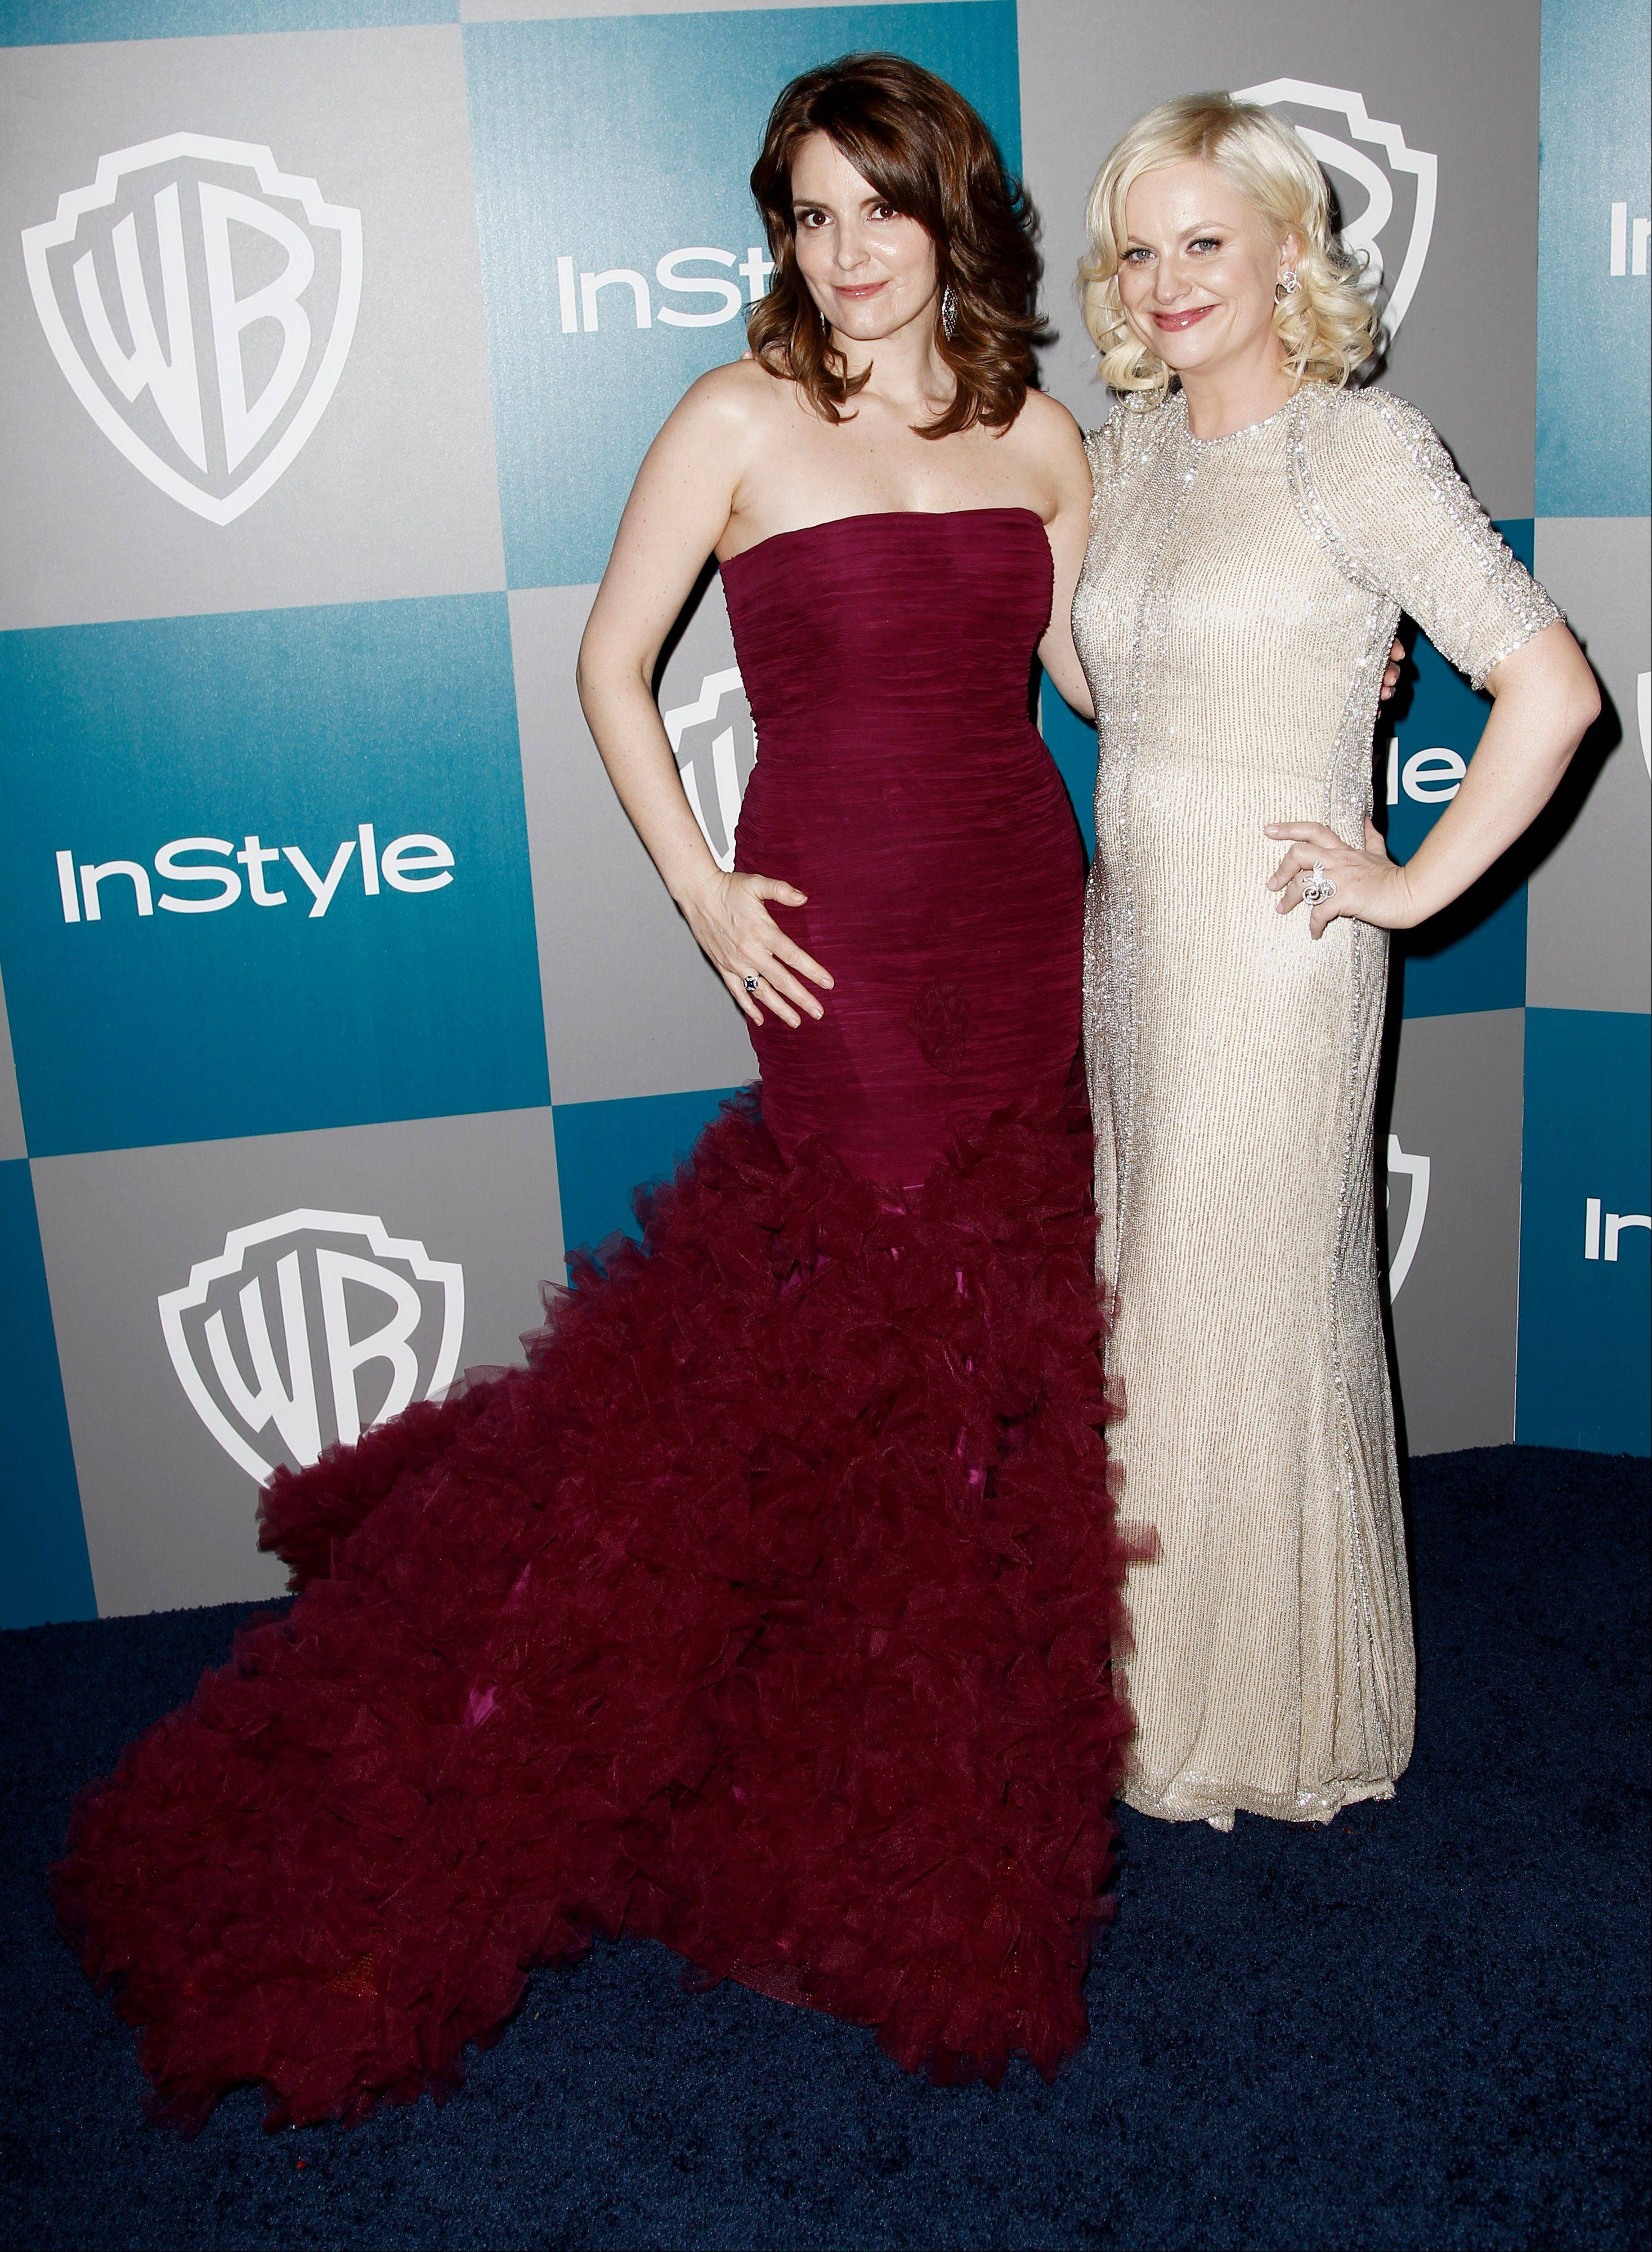 "Tina Fey and Amy Poehler are ready to crack each other up at the Golden Globe Awards on Sunday. The two multi-hyphenate talents offered a taste of their quick-witted banter during a conference call with reporters Wednesday, during which Fey promised, ""We're going to sing the whole show."""